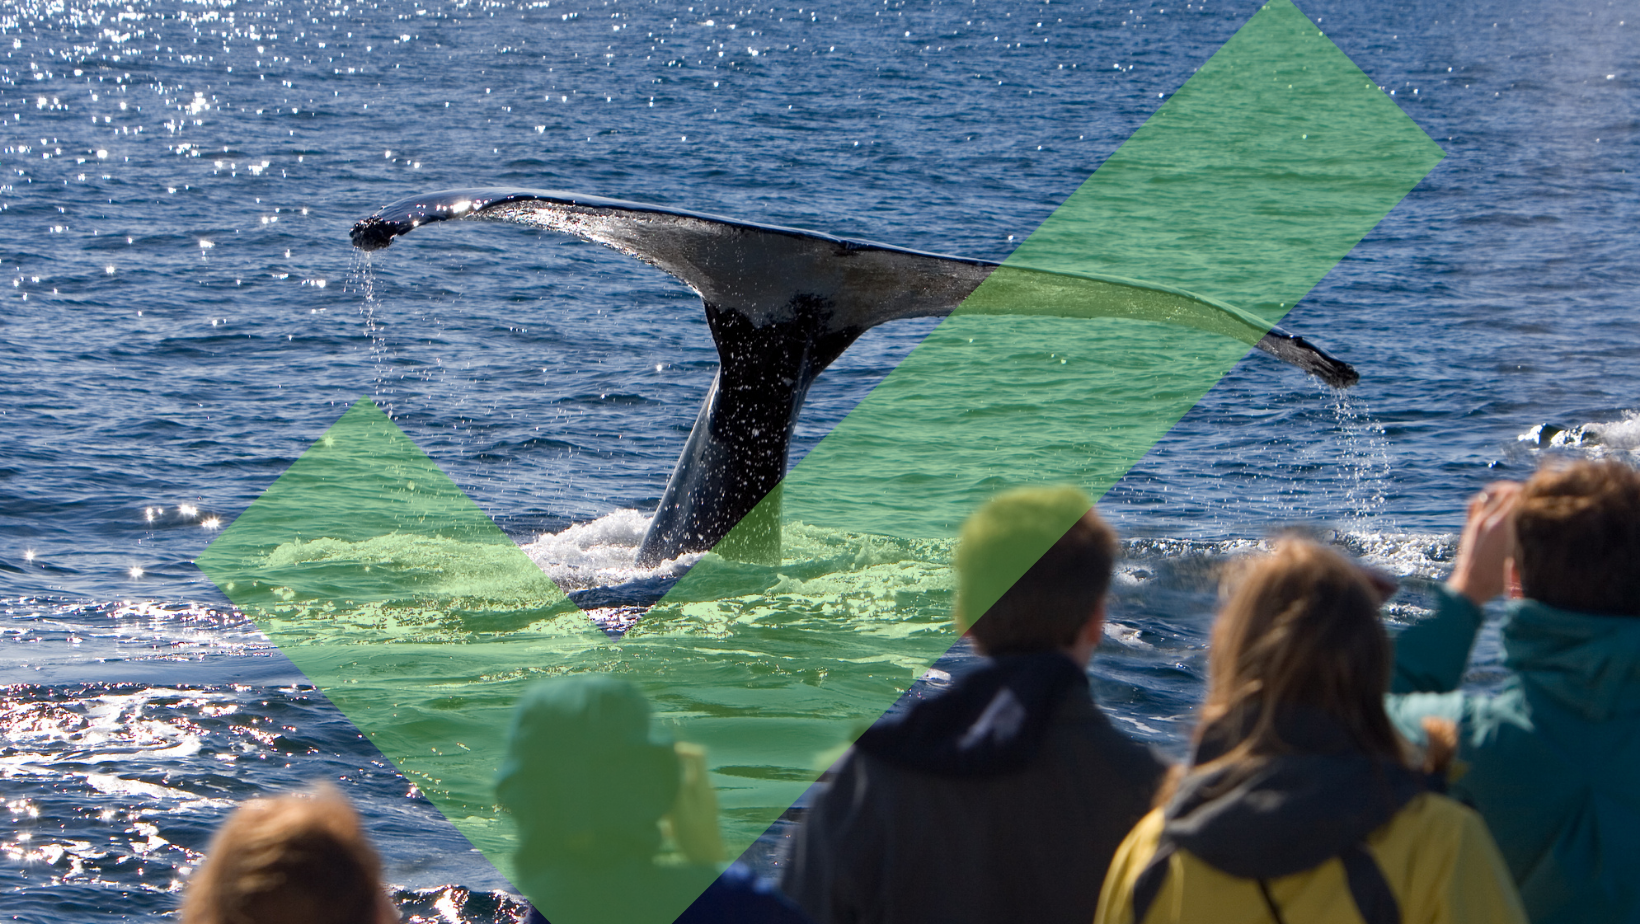 Ethical whale watching tail fluke with a crowd watching